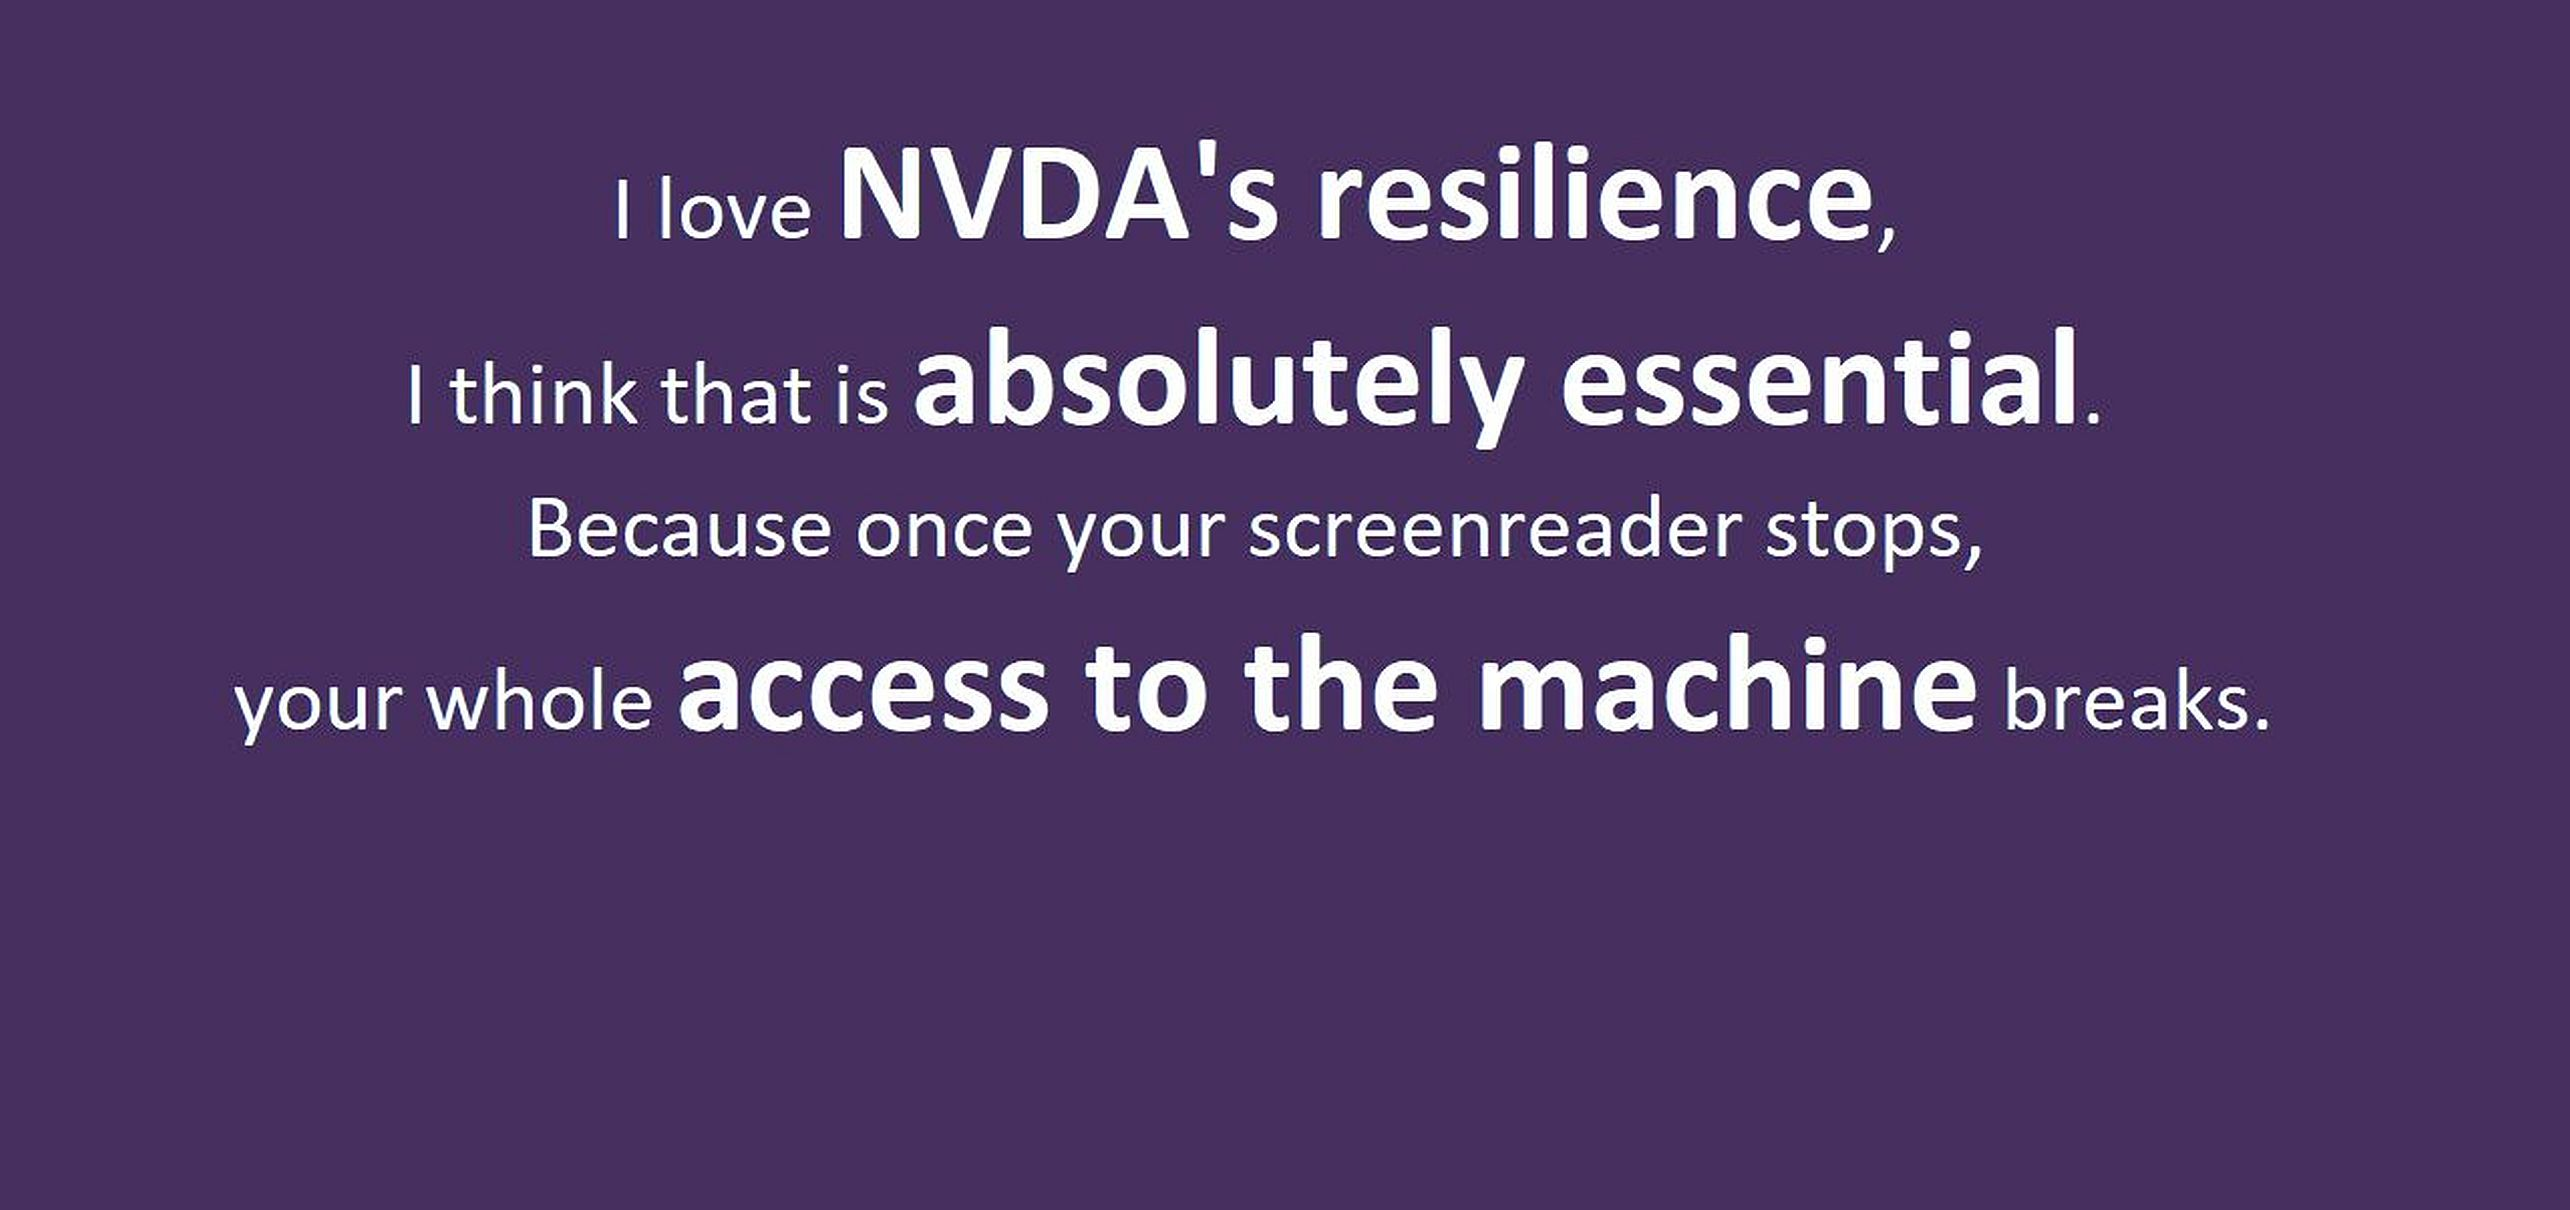 "Text: ""I love NVDA's resilience, I think that is absolutely essential.  Because once your screenreader stops, your whole access to the machine breaks."" in white on purple."